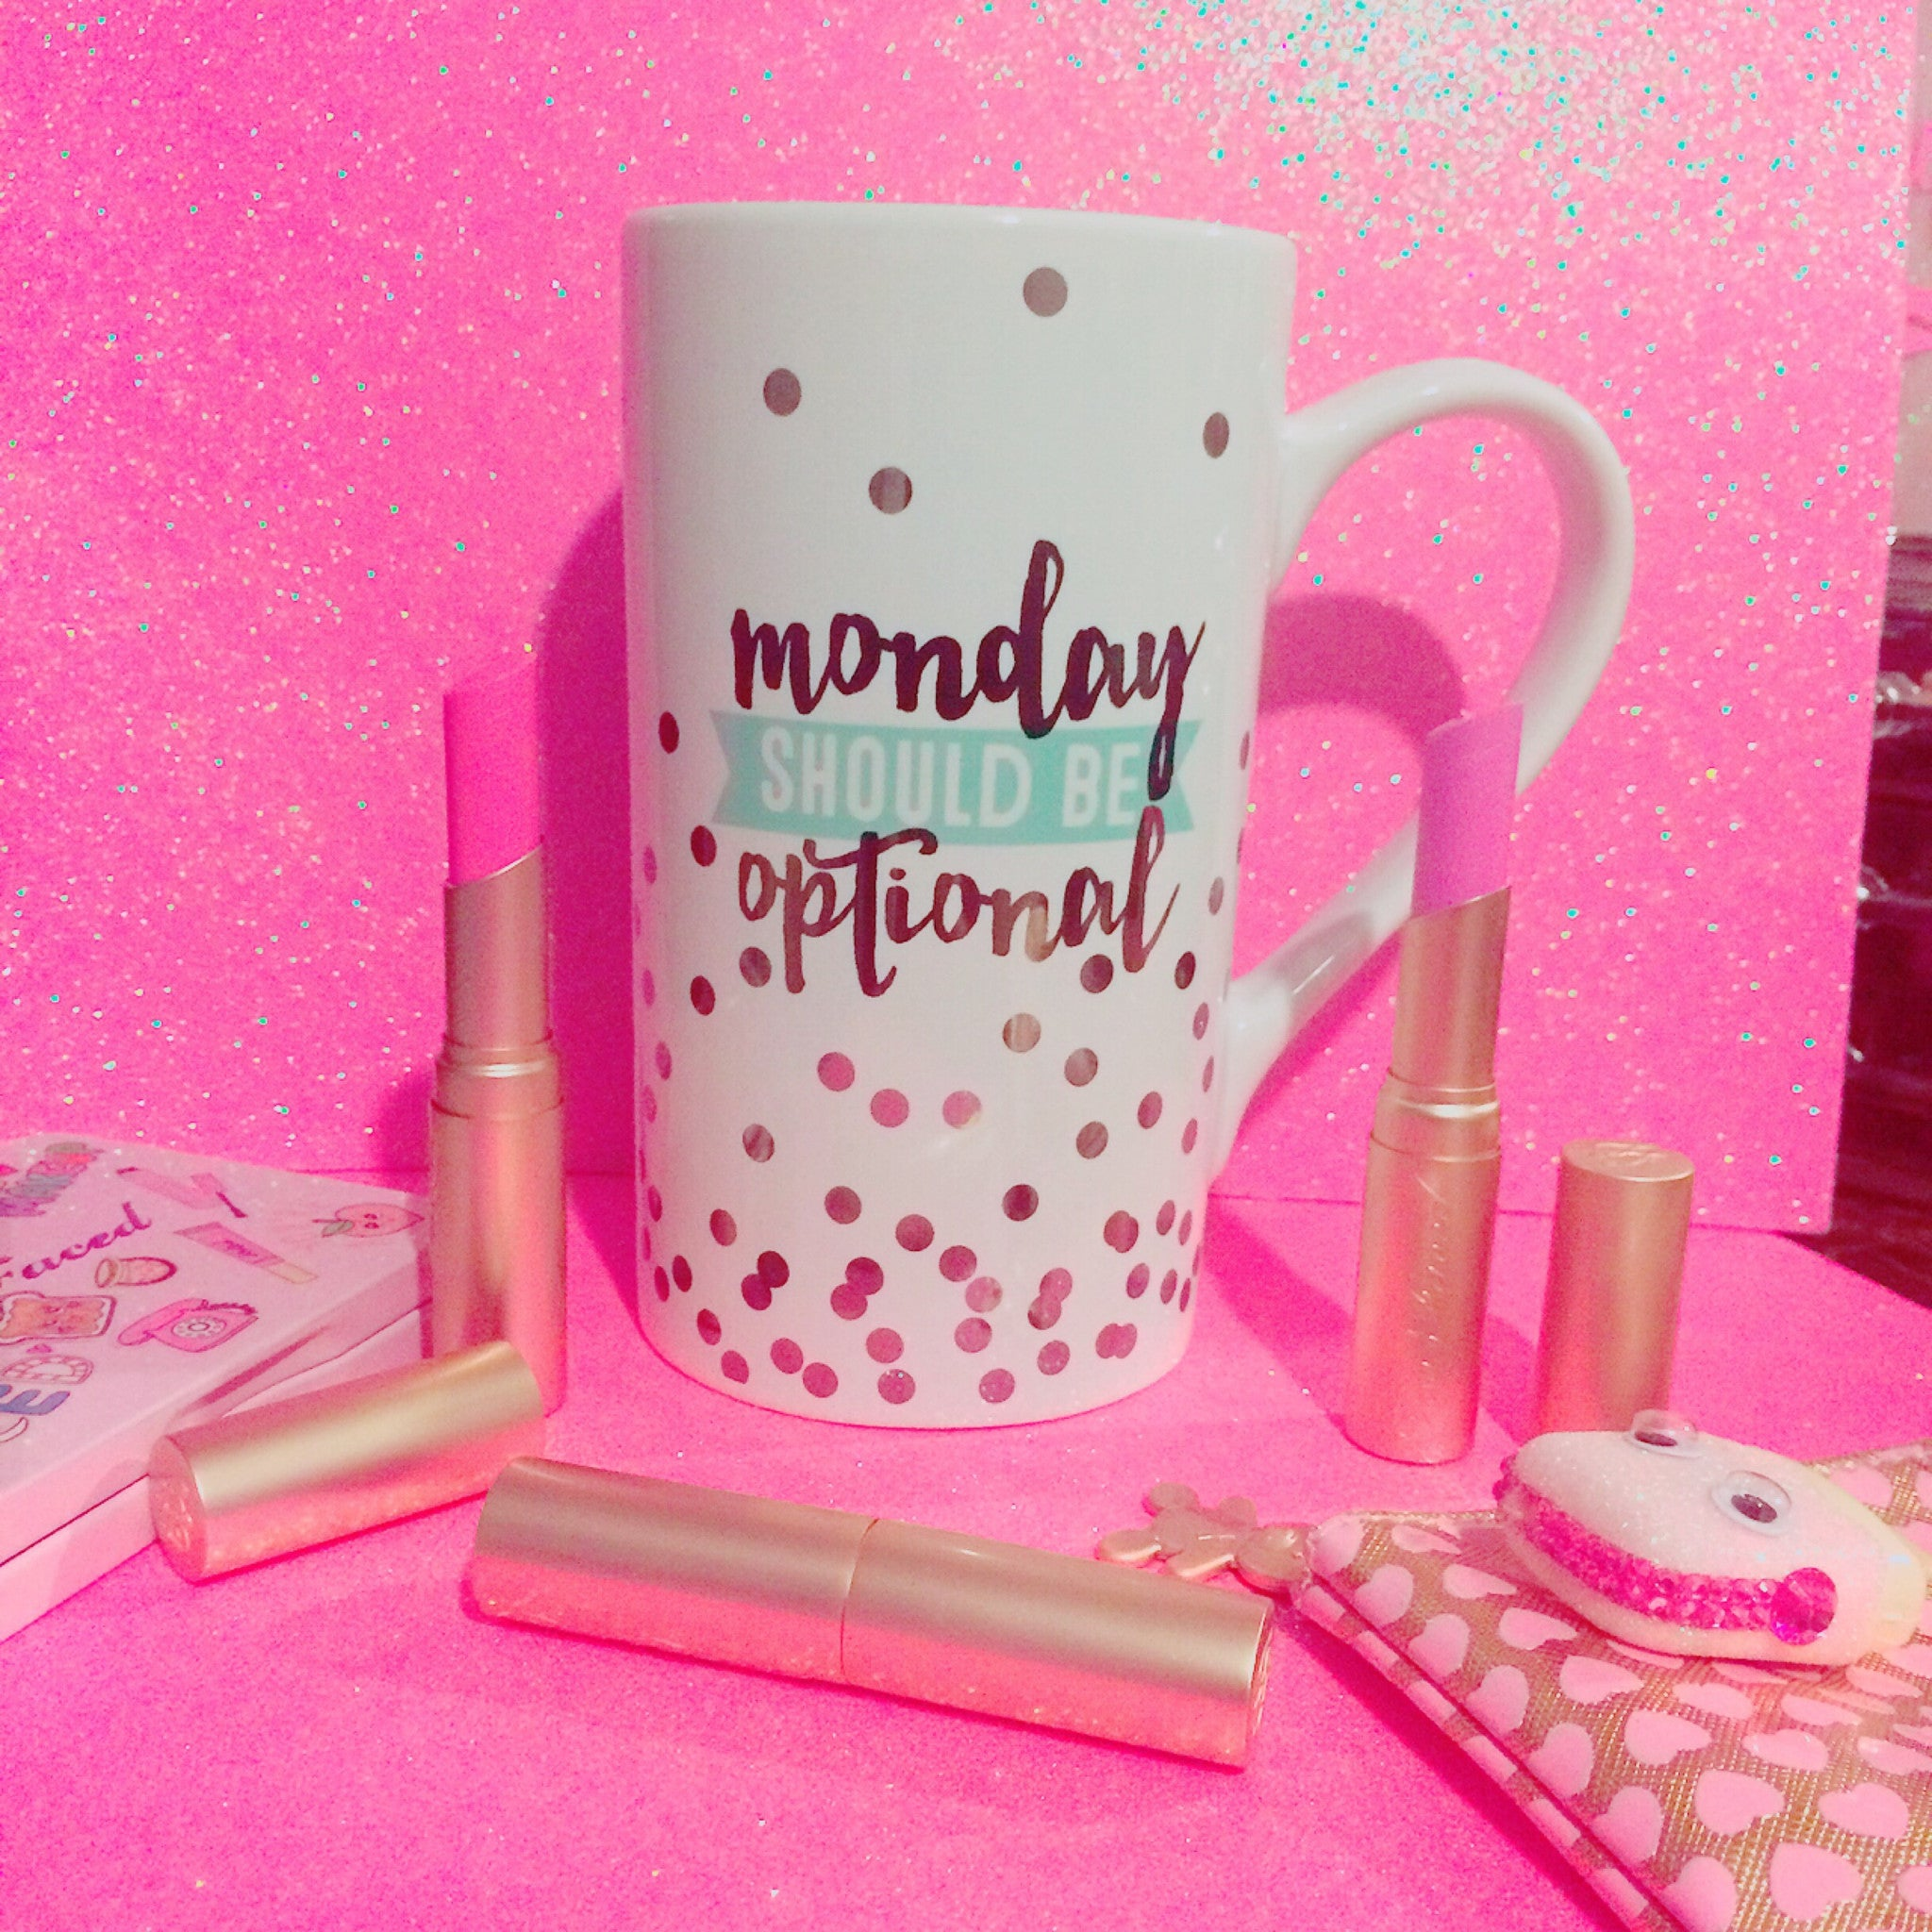 Monday should be optional mug